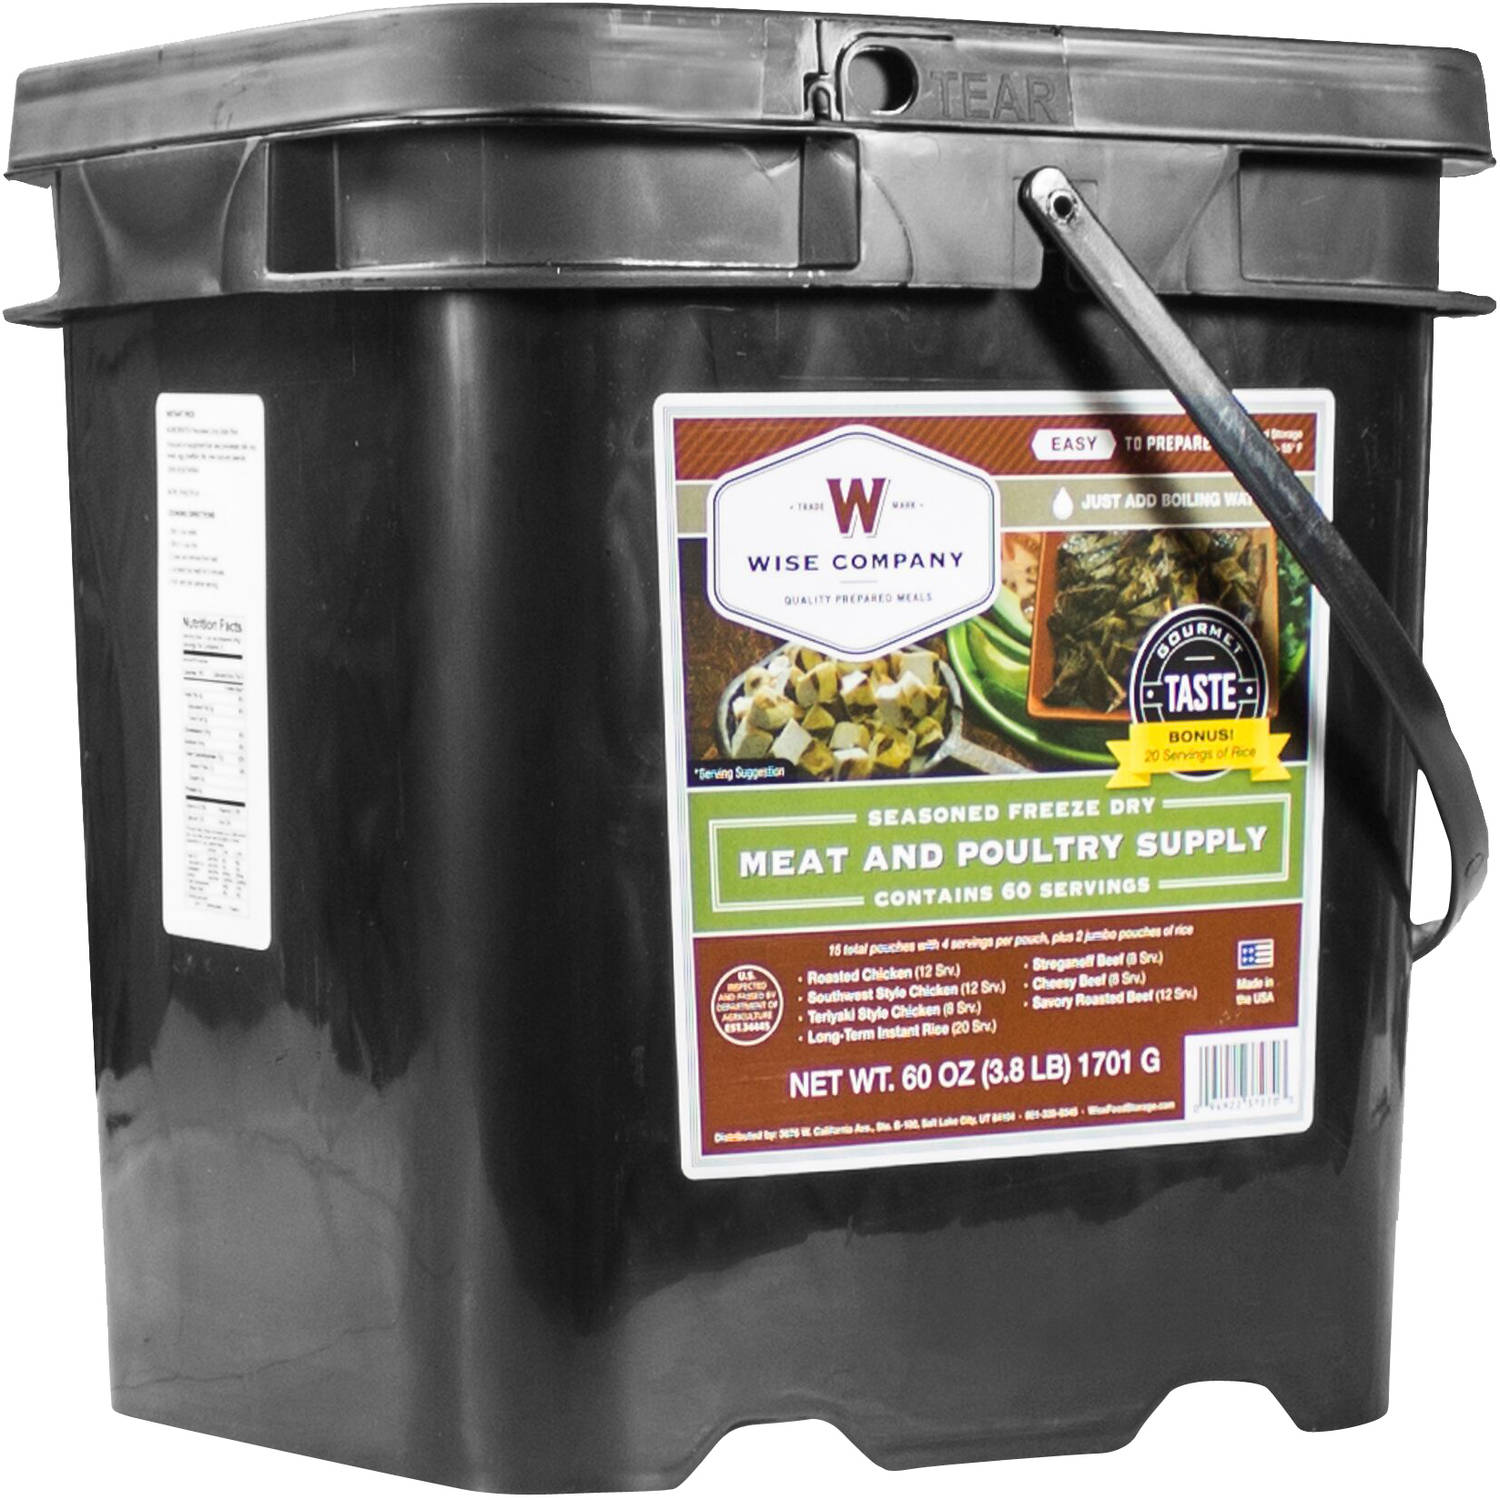 Wise Company Seasoned Freeze Dried Meat & Poultry Food Supply Kit, 80 pc by Wise Company, Inc